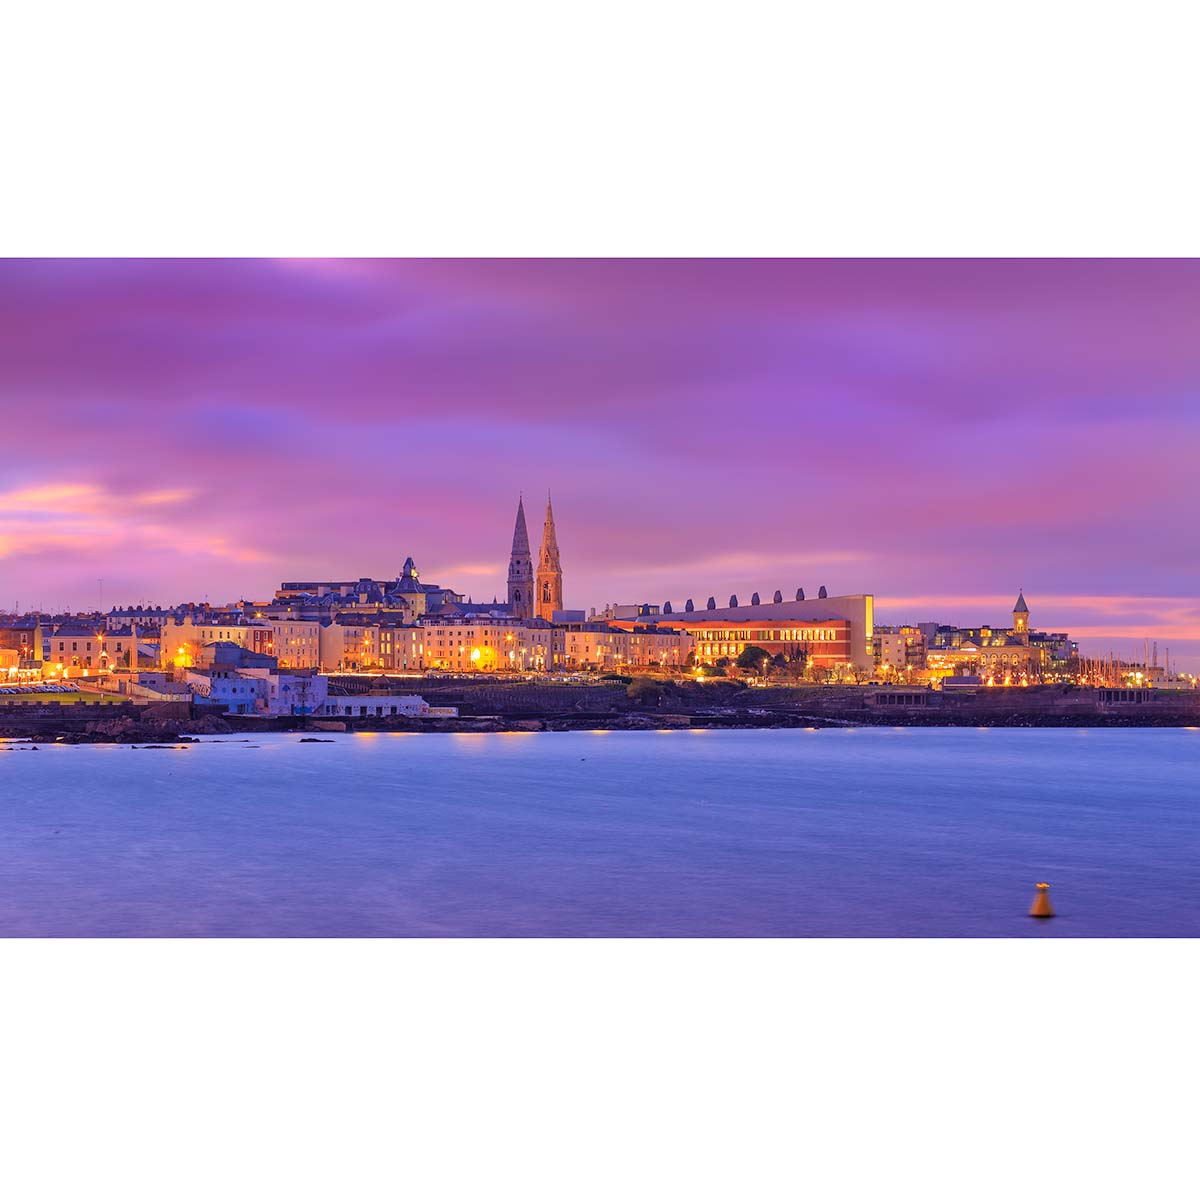 View of Dun Laoghaire skyline by night © Robert Kelly